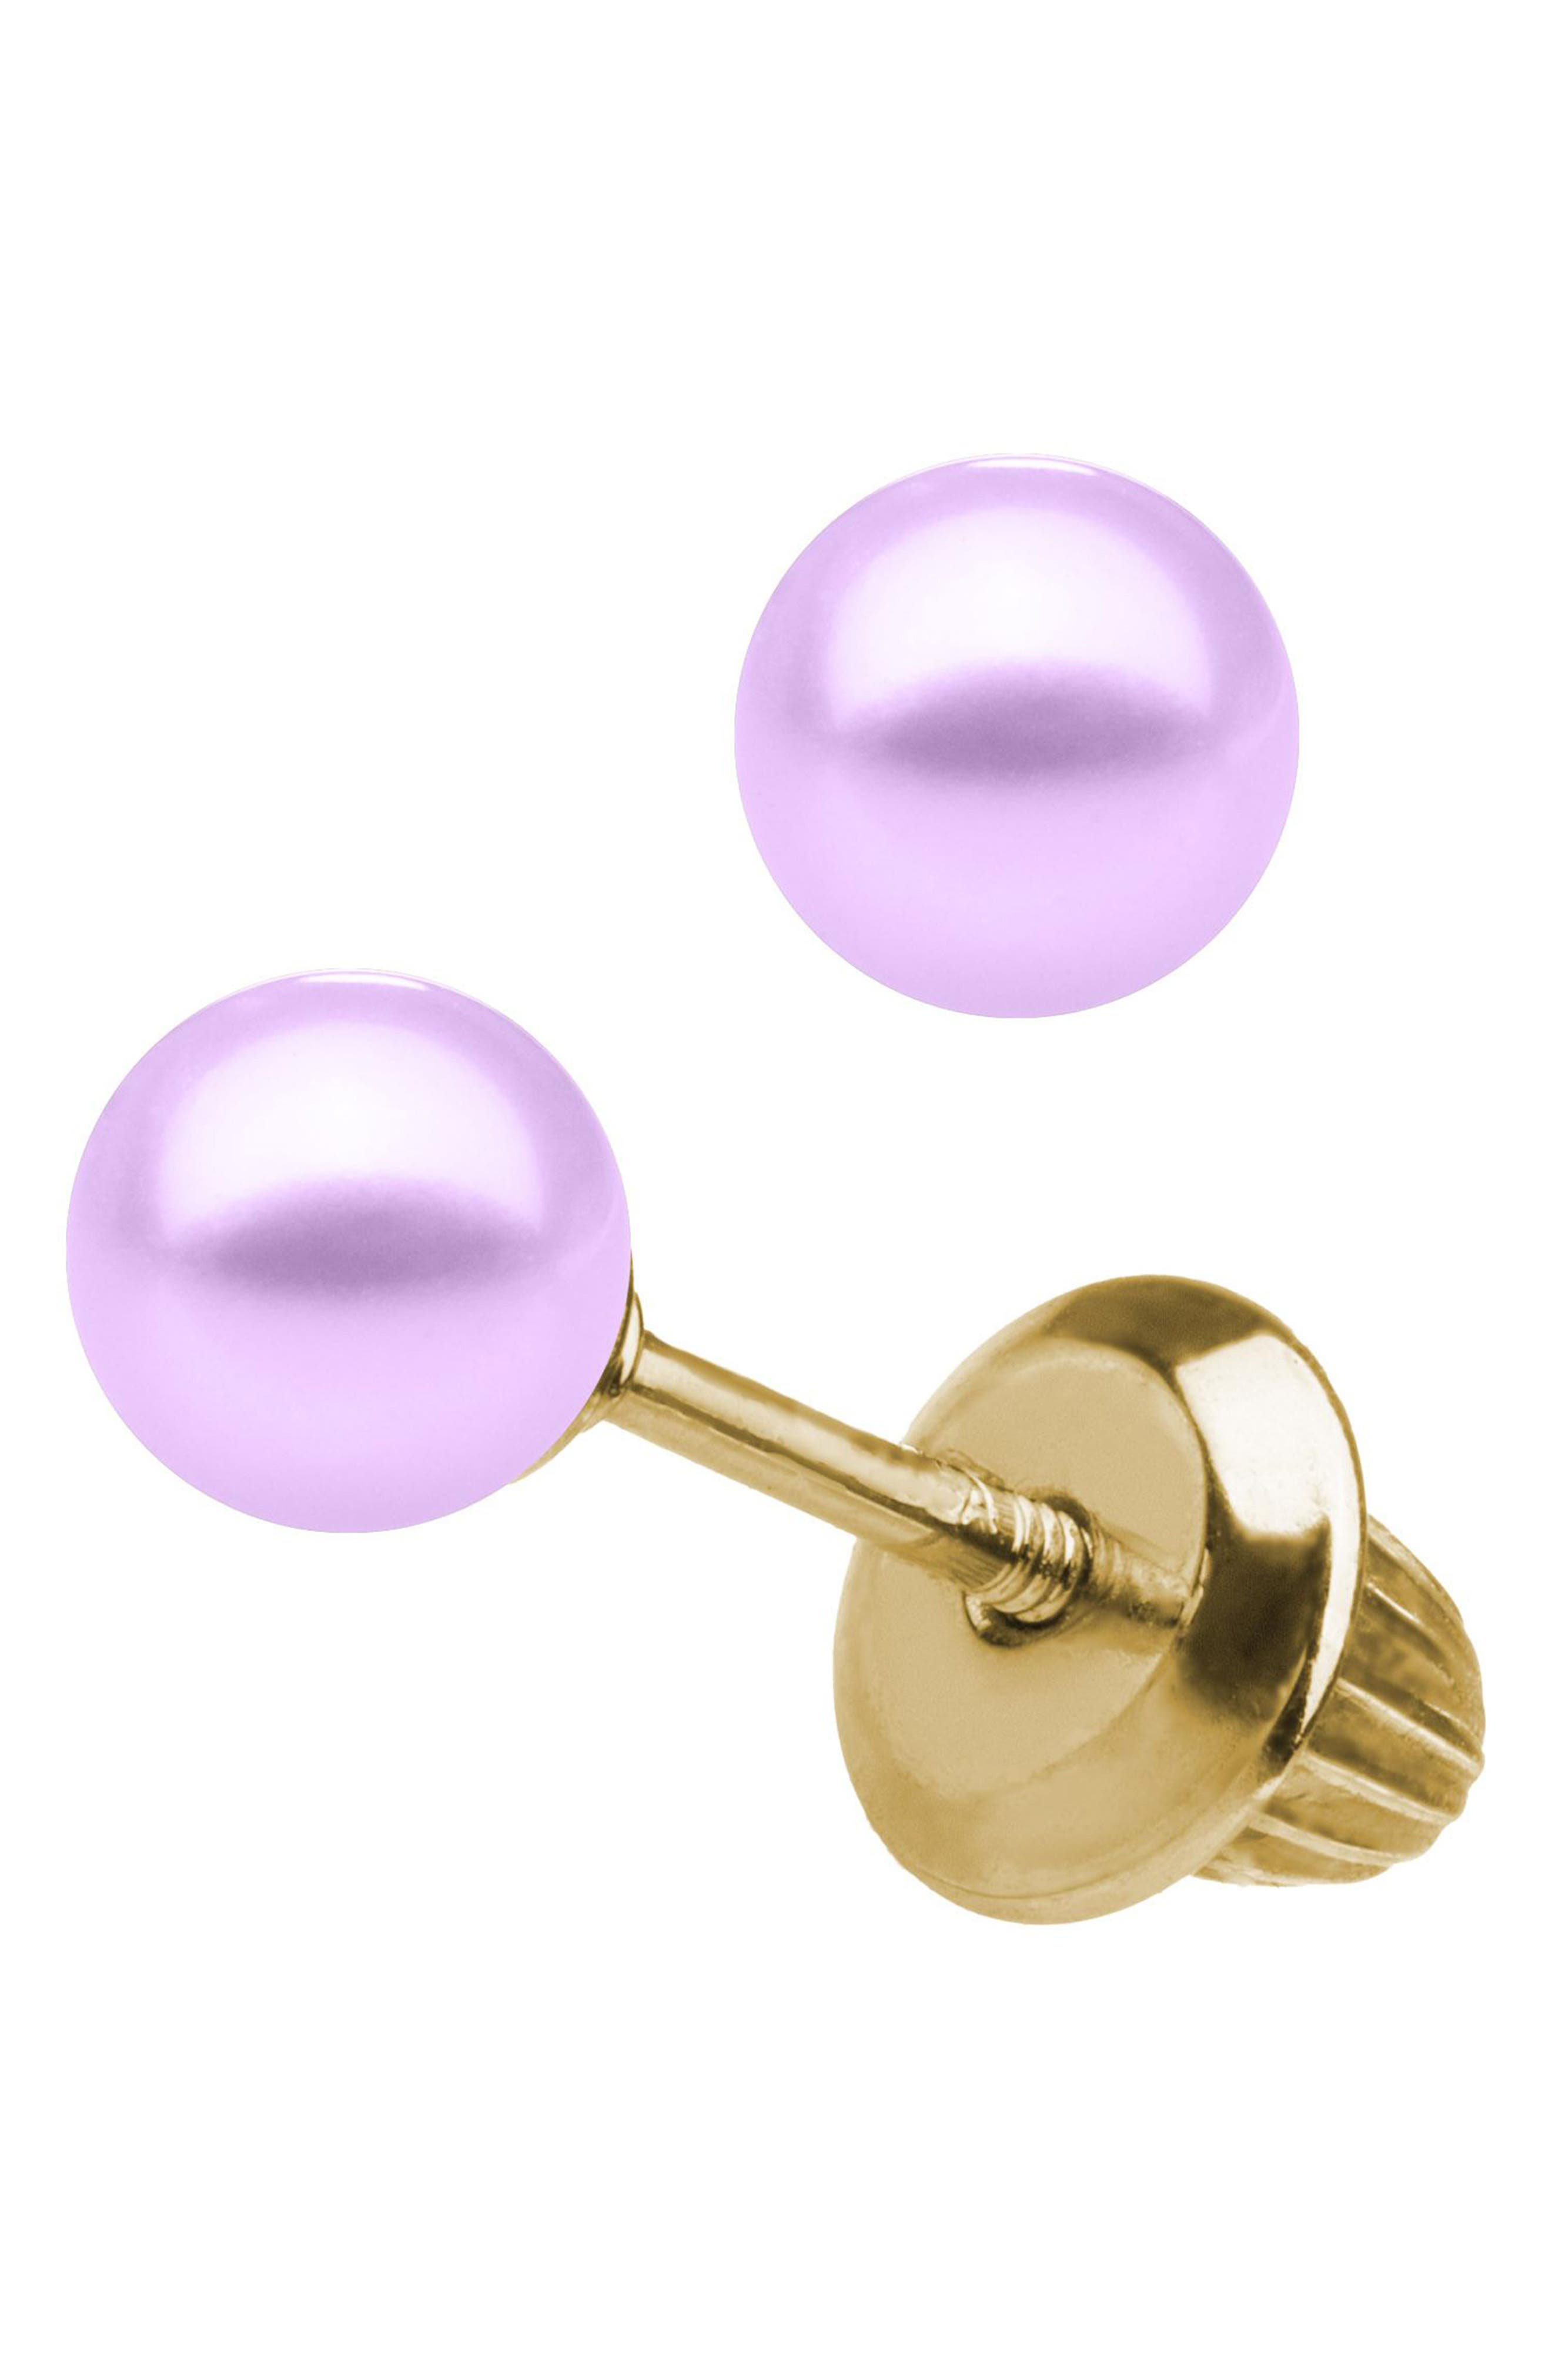 14k Yellow Gold & Cultured Pearl Earrings,                         Main,                         color, PURPLE